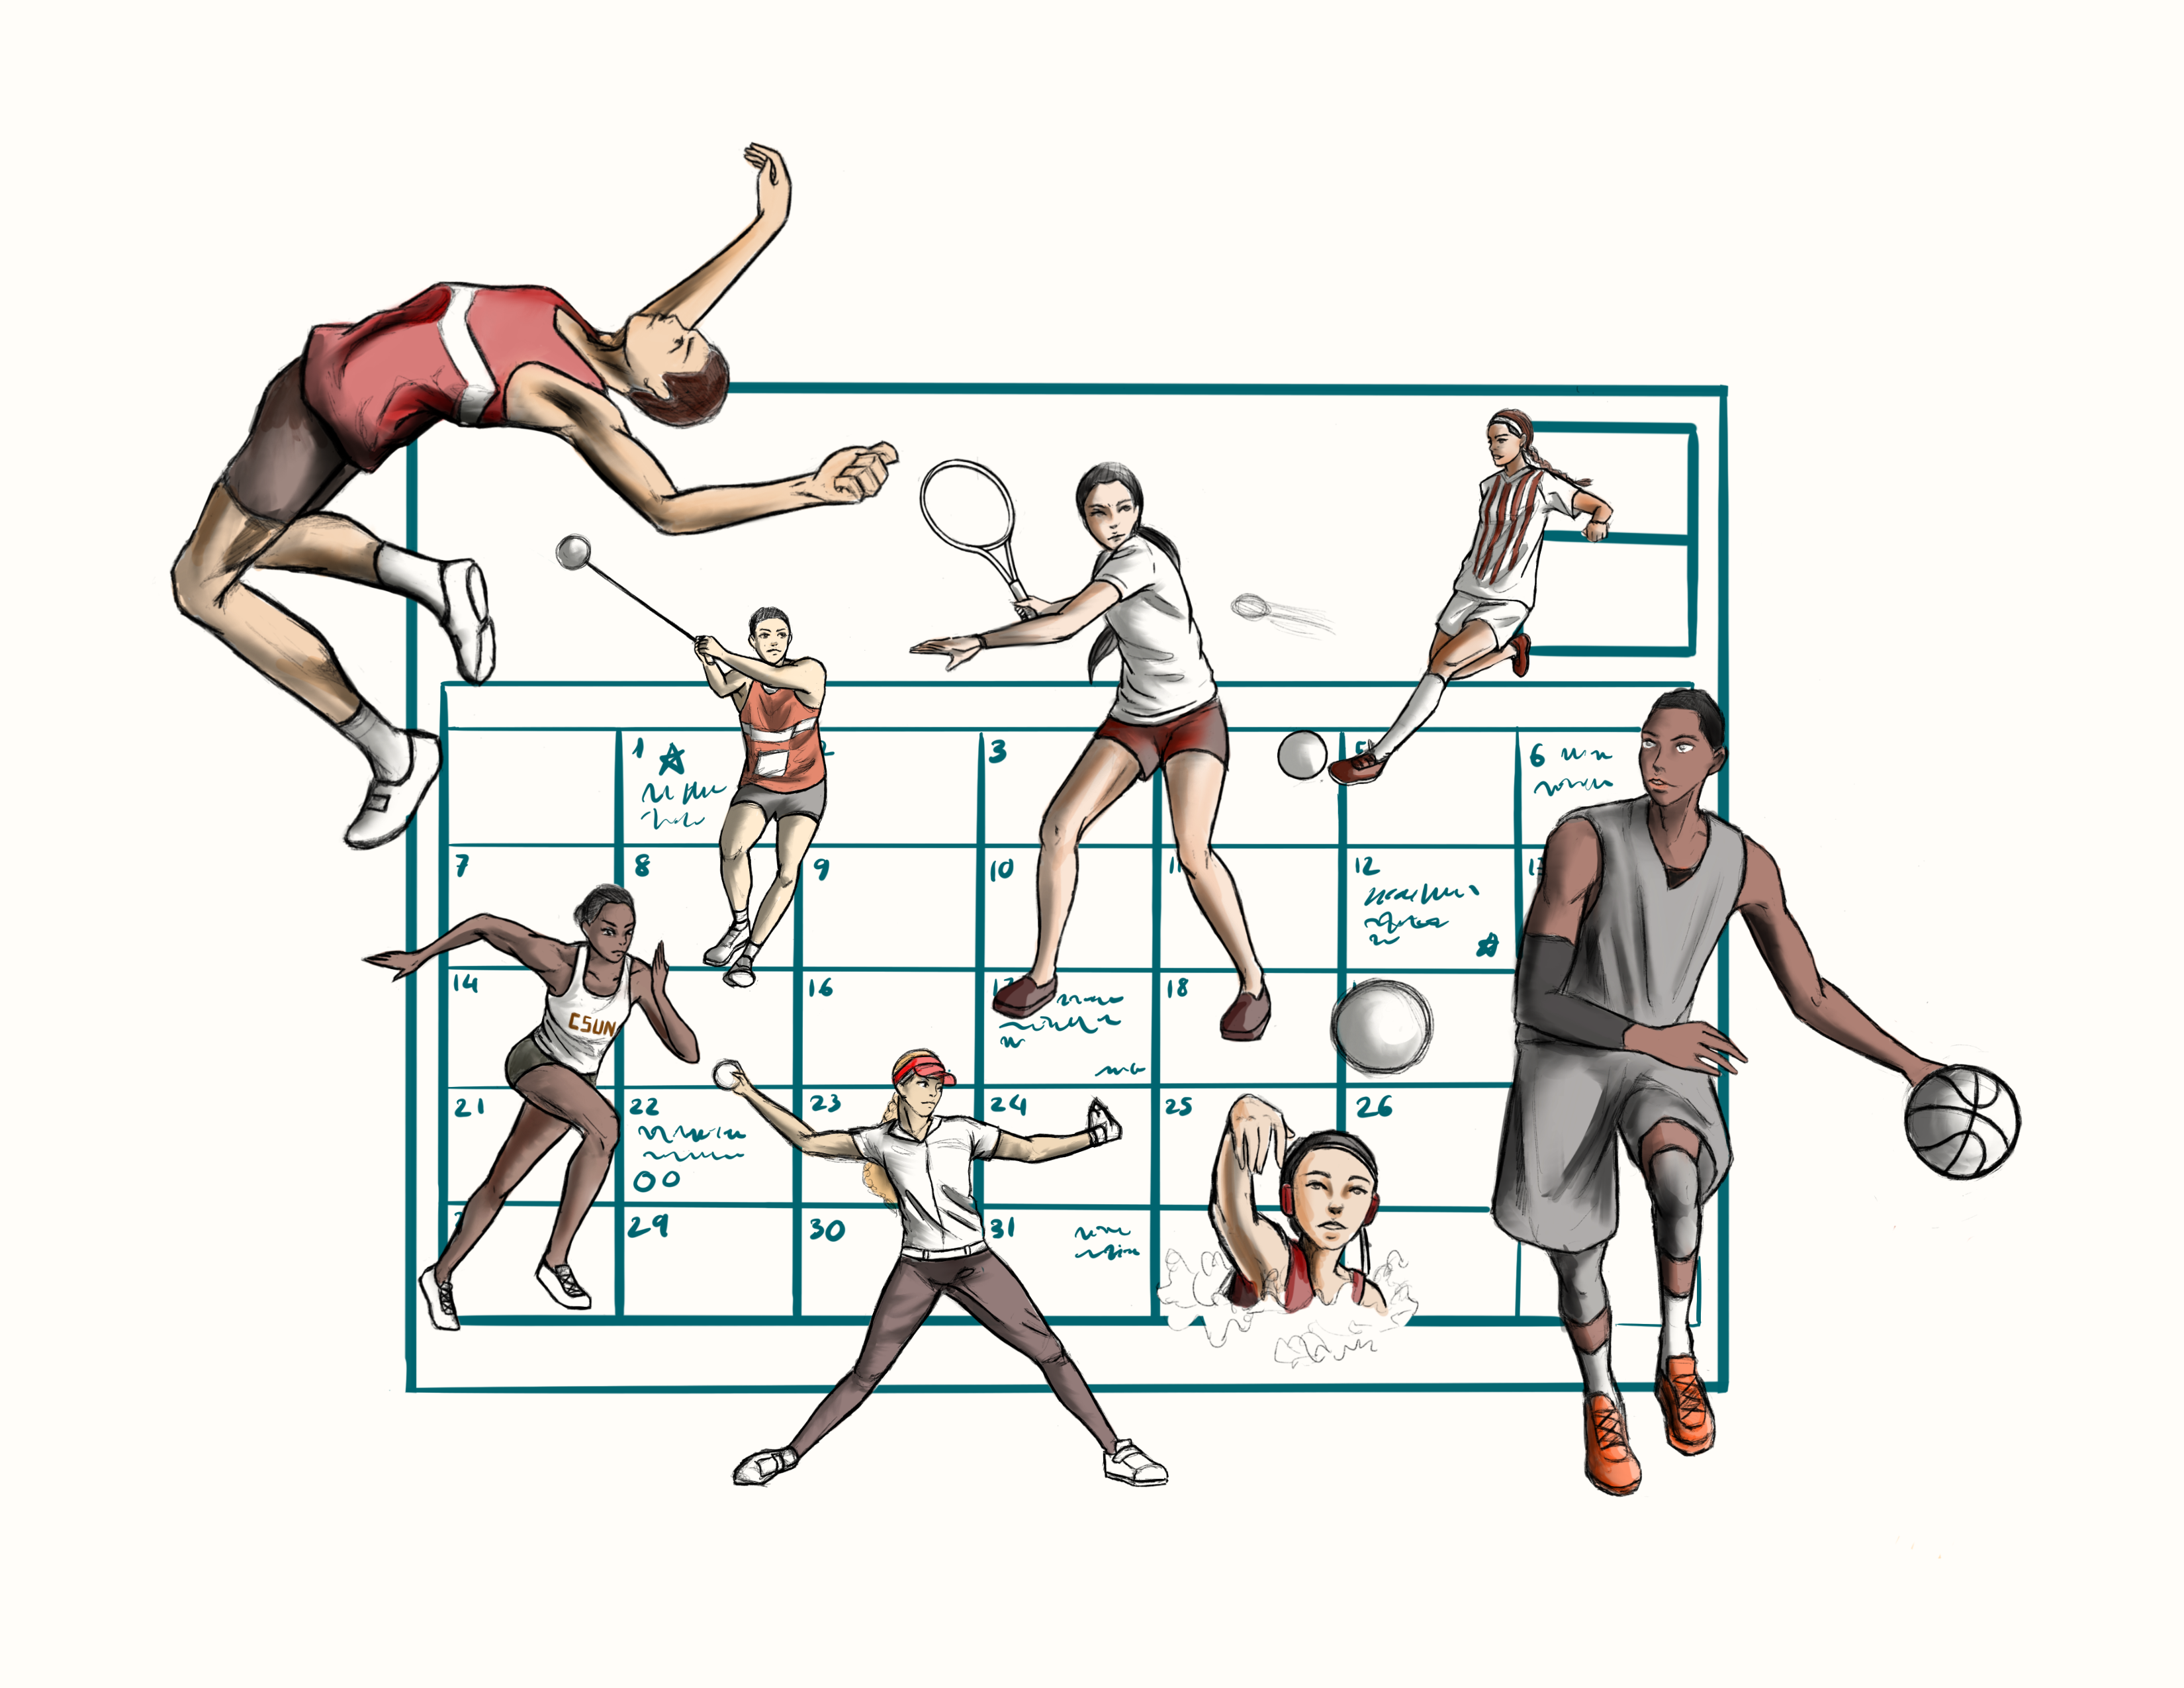 Illustration shows female athletes in front of calendar